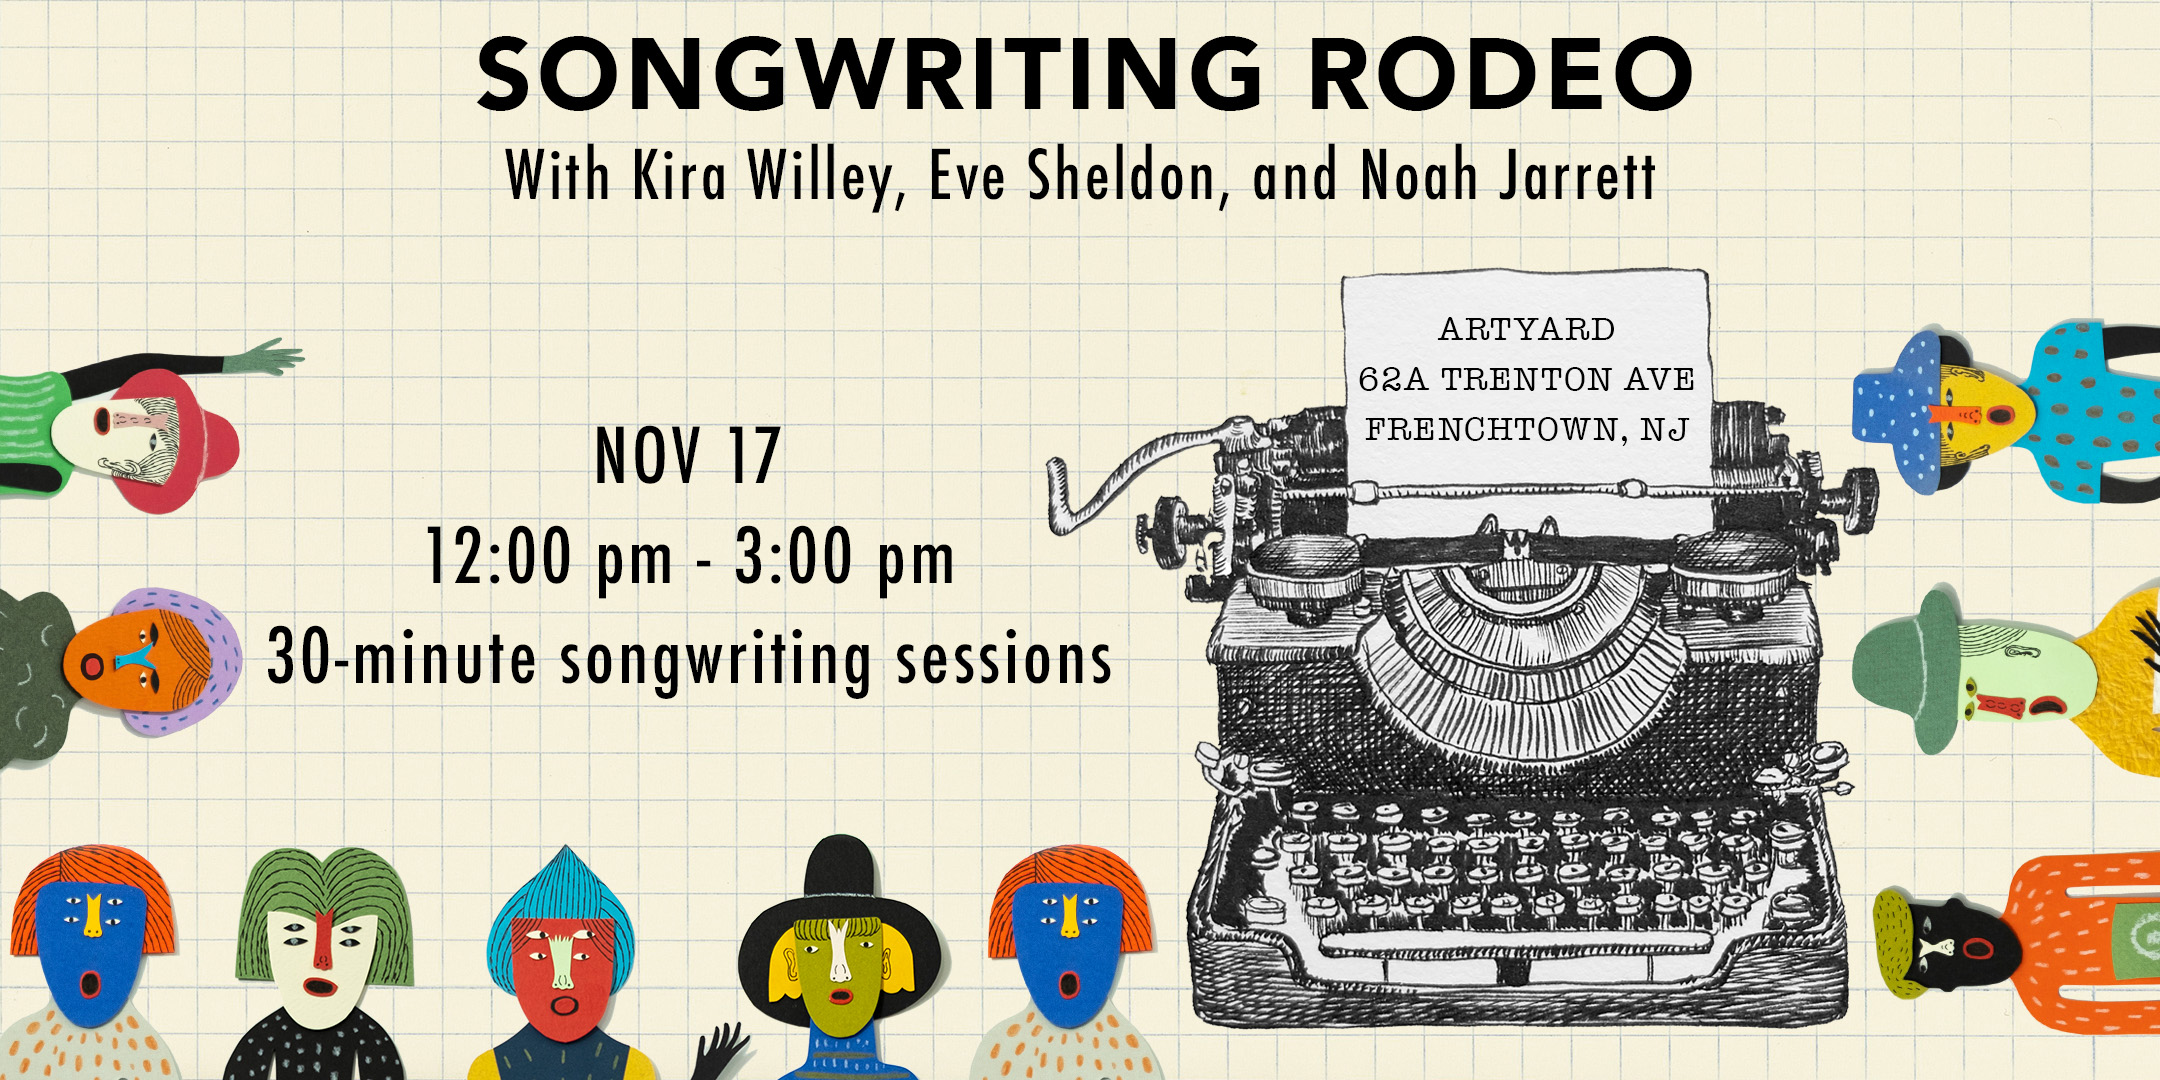 Songwriting Rodeo (SONGWRITING SESSION) @ ArtYard's Theater | Frenchtown | New Jersey | United States